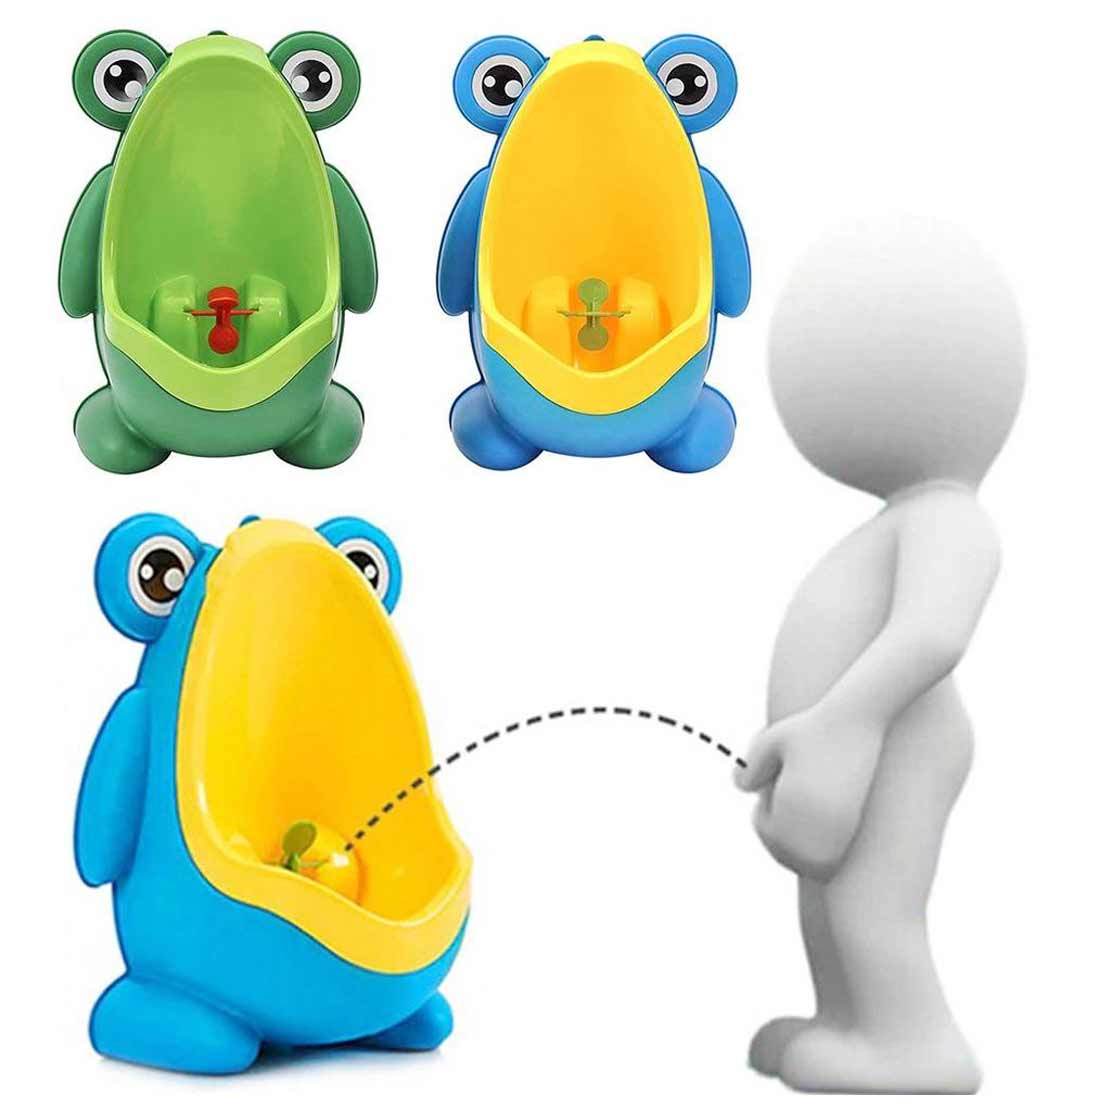 Baby Boy Bathroom Frog Urinal Kids Frog Potty Toilet Urinal Pee Trainer Wall-Mounted Toilet Pee Trainer Pen Children